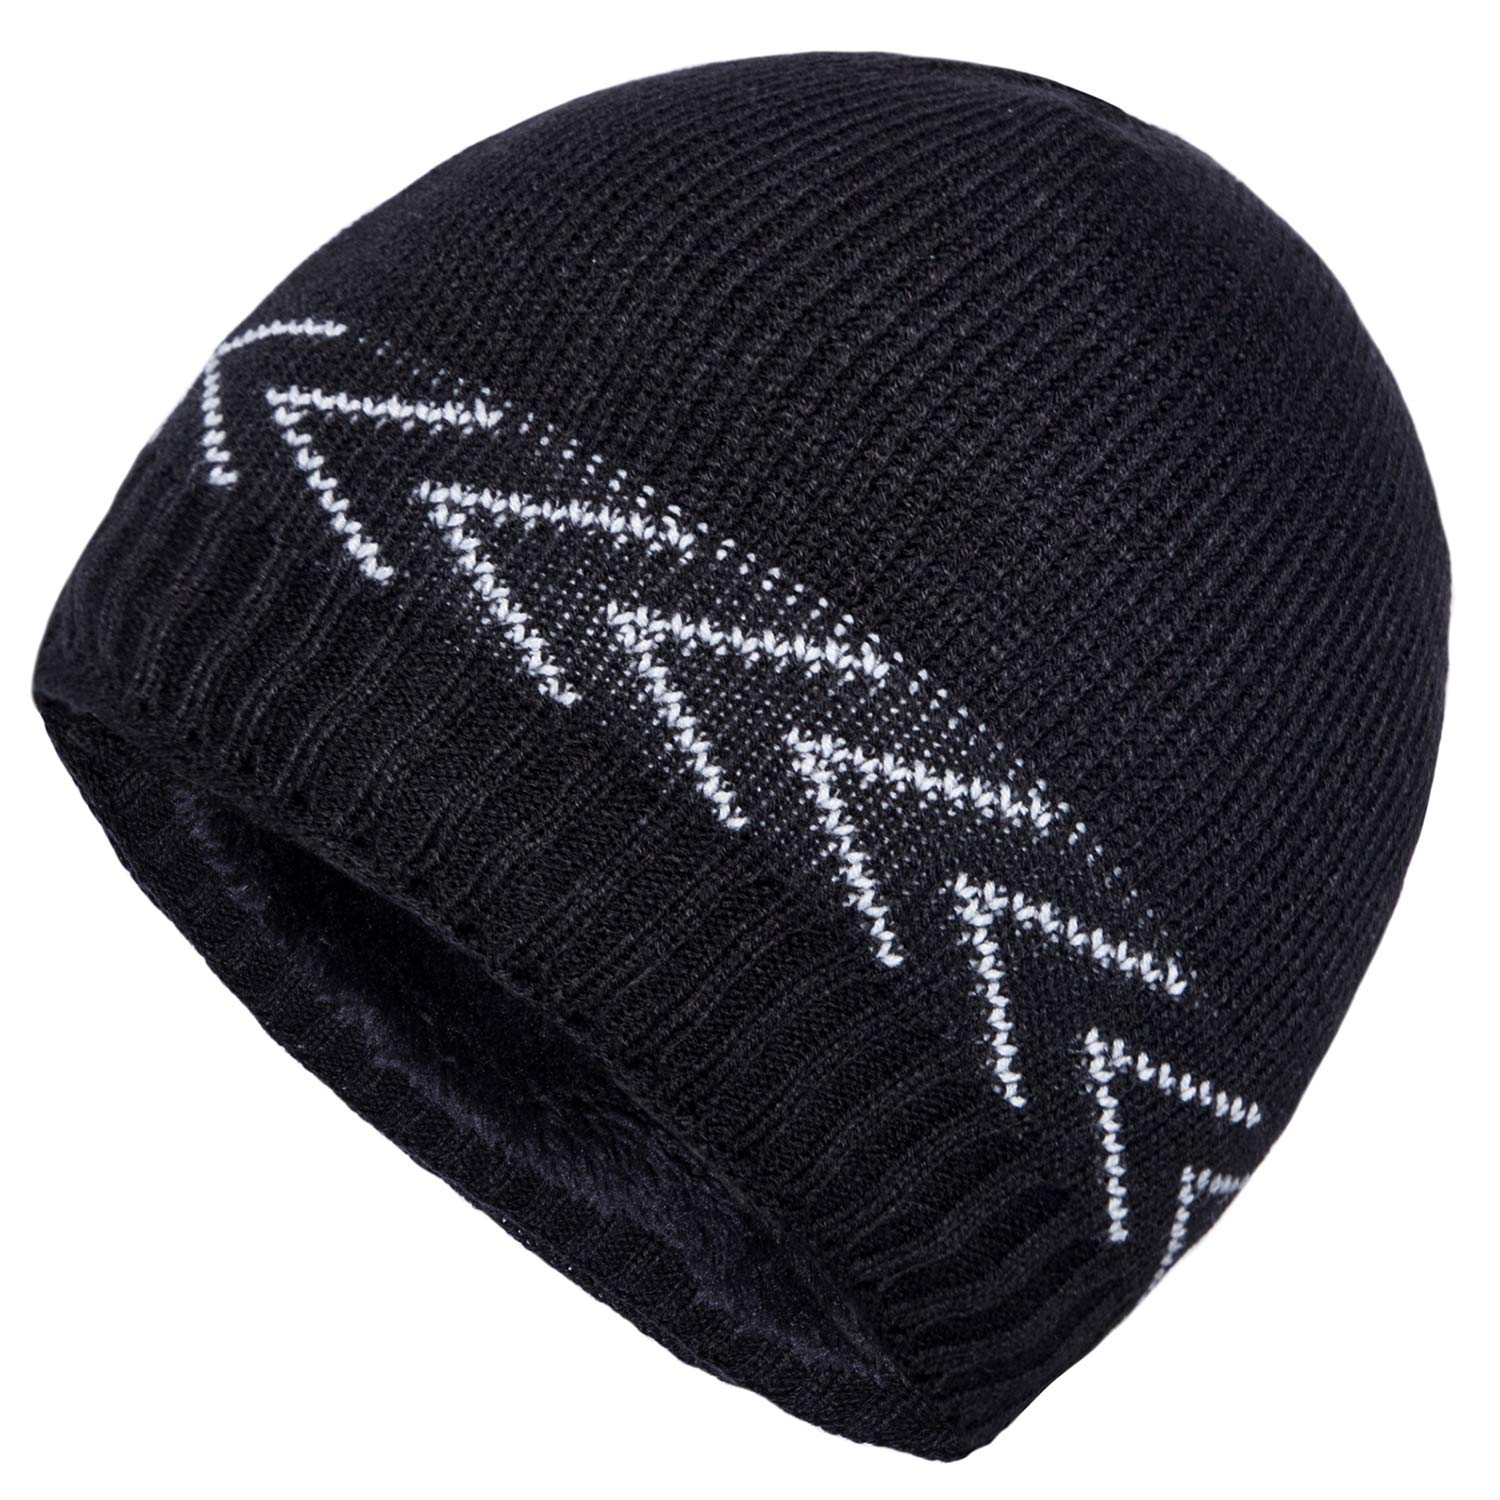 YSense Mens Winter Hats Warm Knit Beanie Plain Fleece Lined Cuff Toboggan  Skull Cap at Amazon Men s Clothing store  336b94504d8